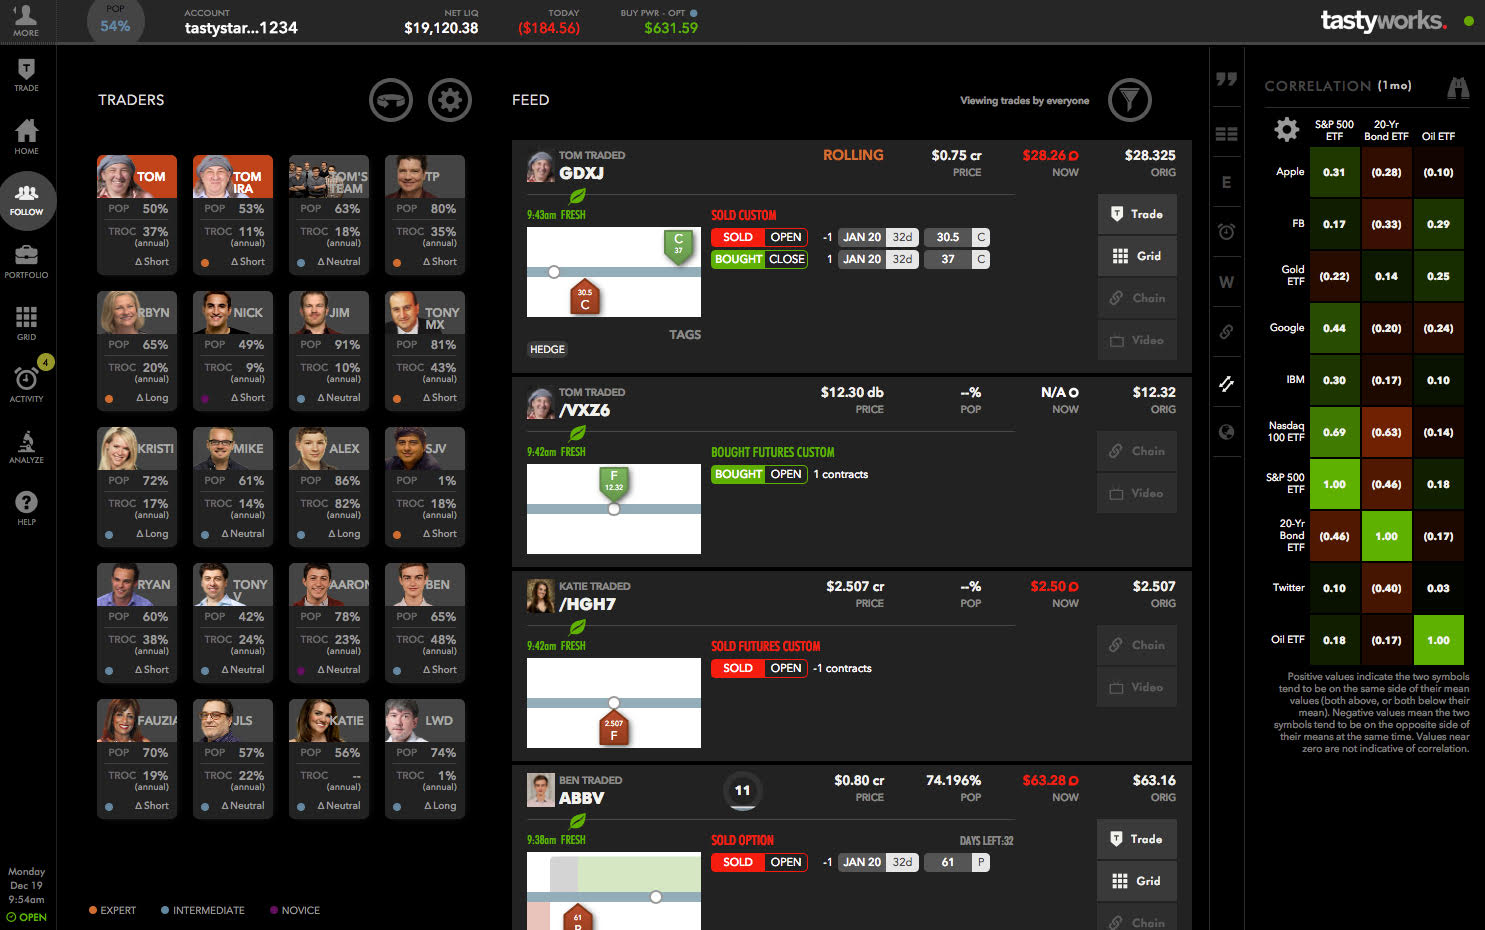 Follow your favorite traders and see their positions live.